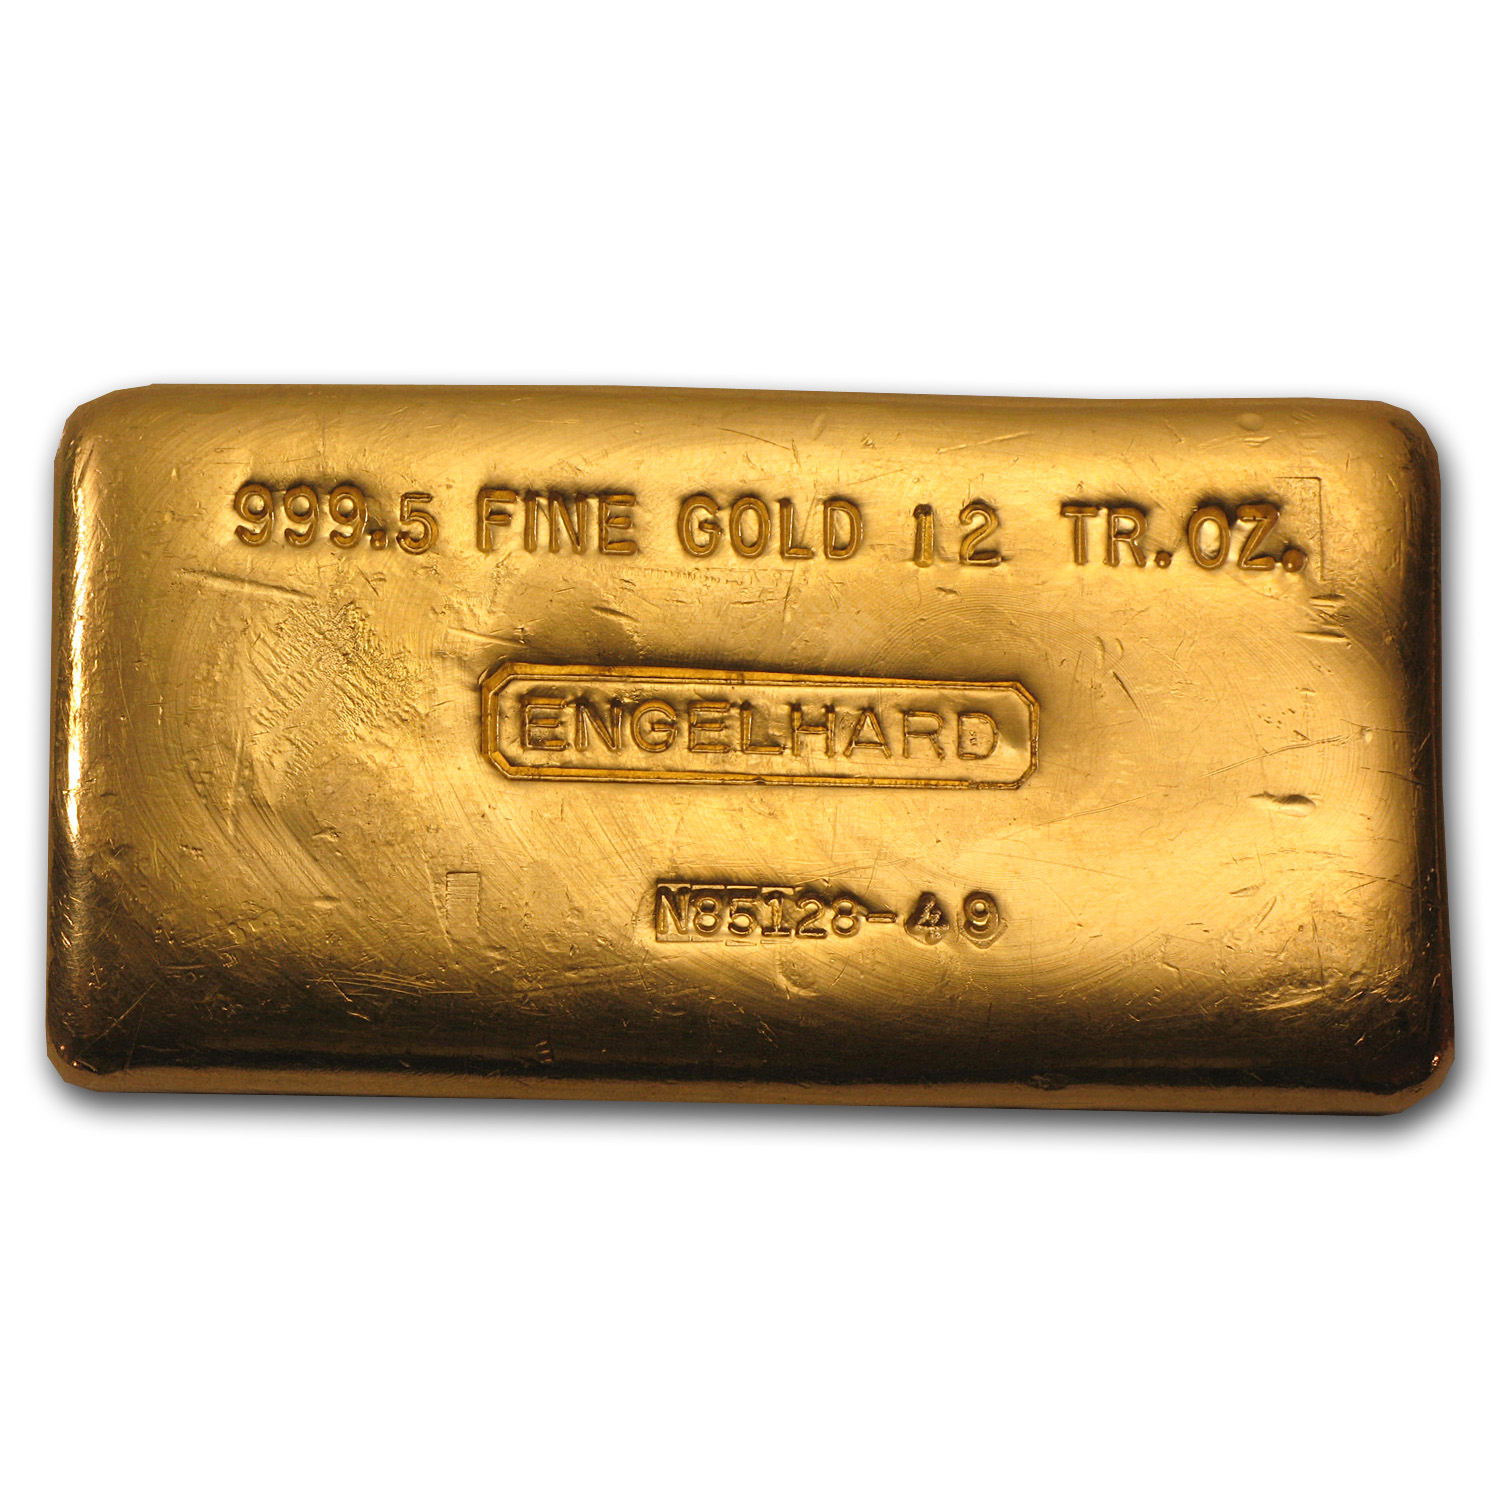 12 Oz Gold Bar Engelhard Poured 9995 Fine